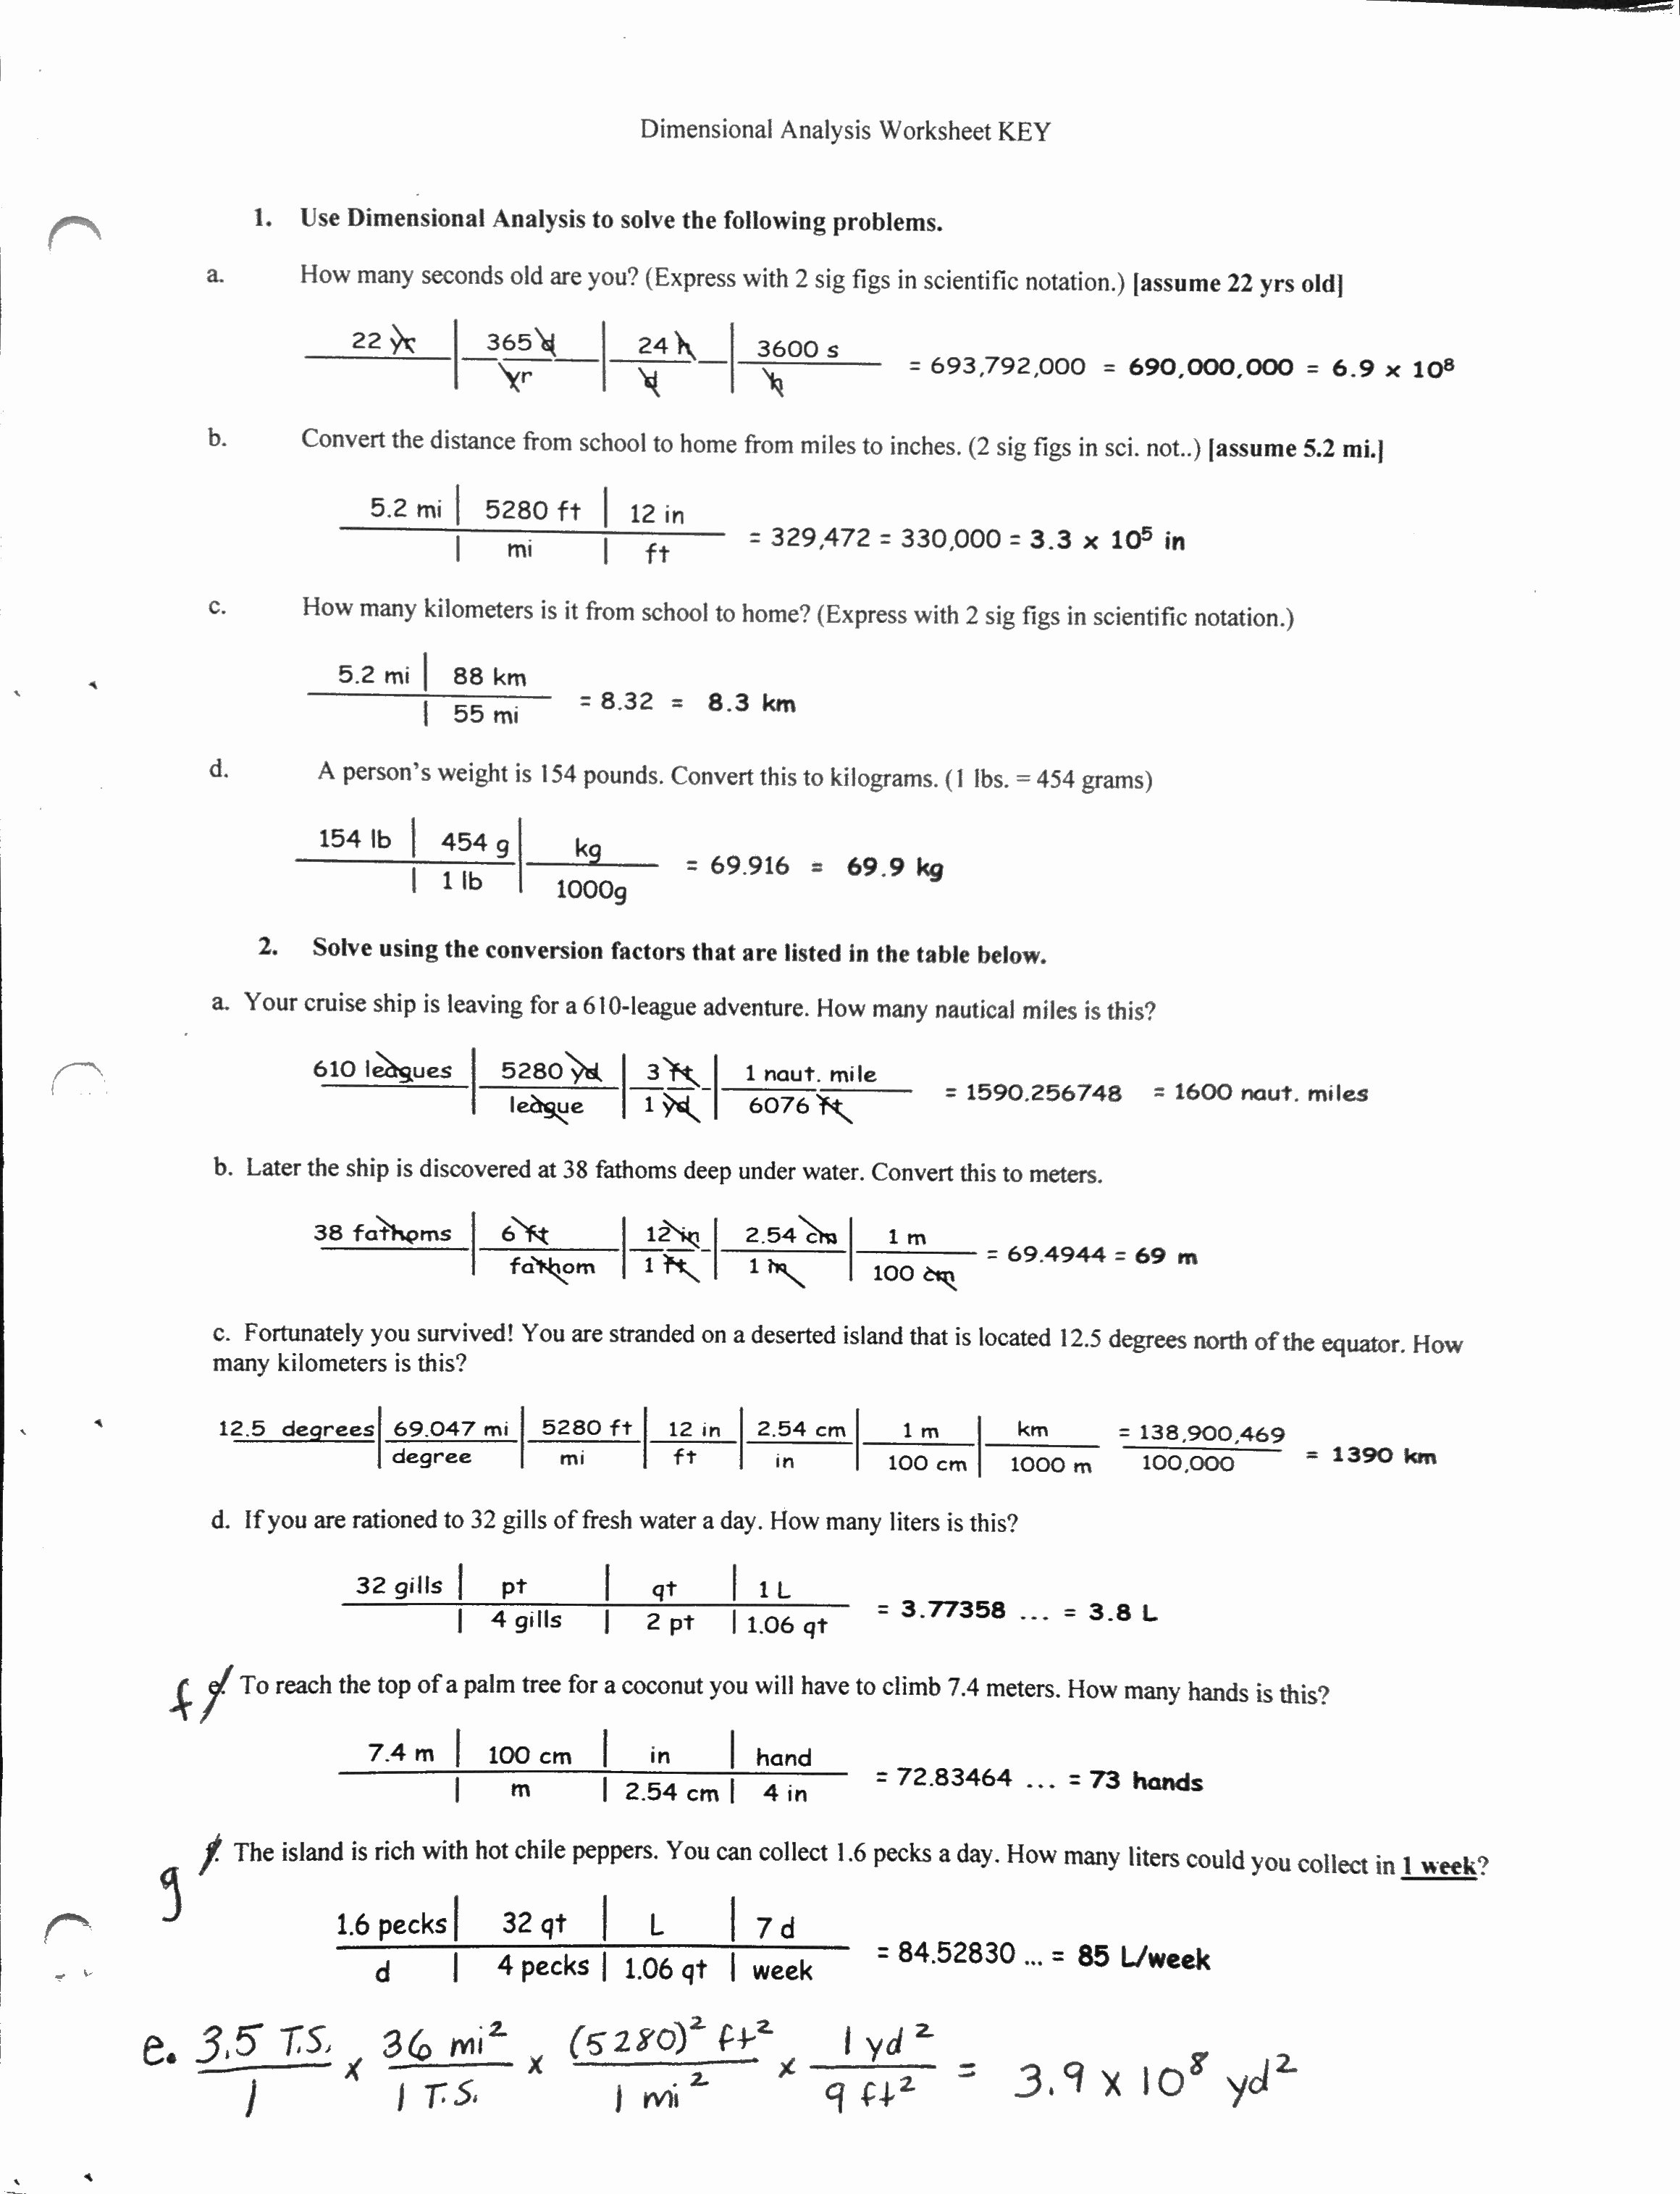 Dimensional Analysis Worksheet Key Inspirational Dimensional Analysis Worksheet with Answer Key the Best